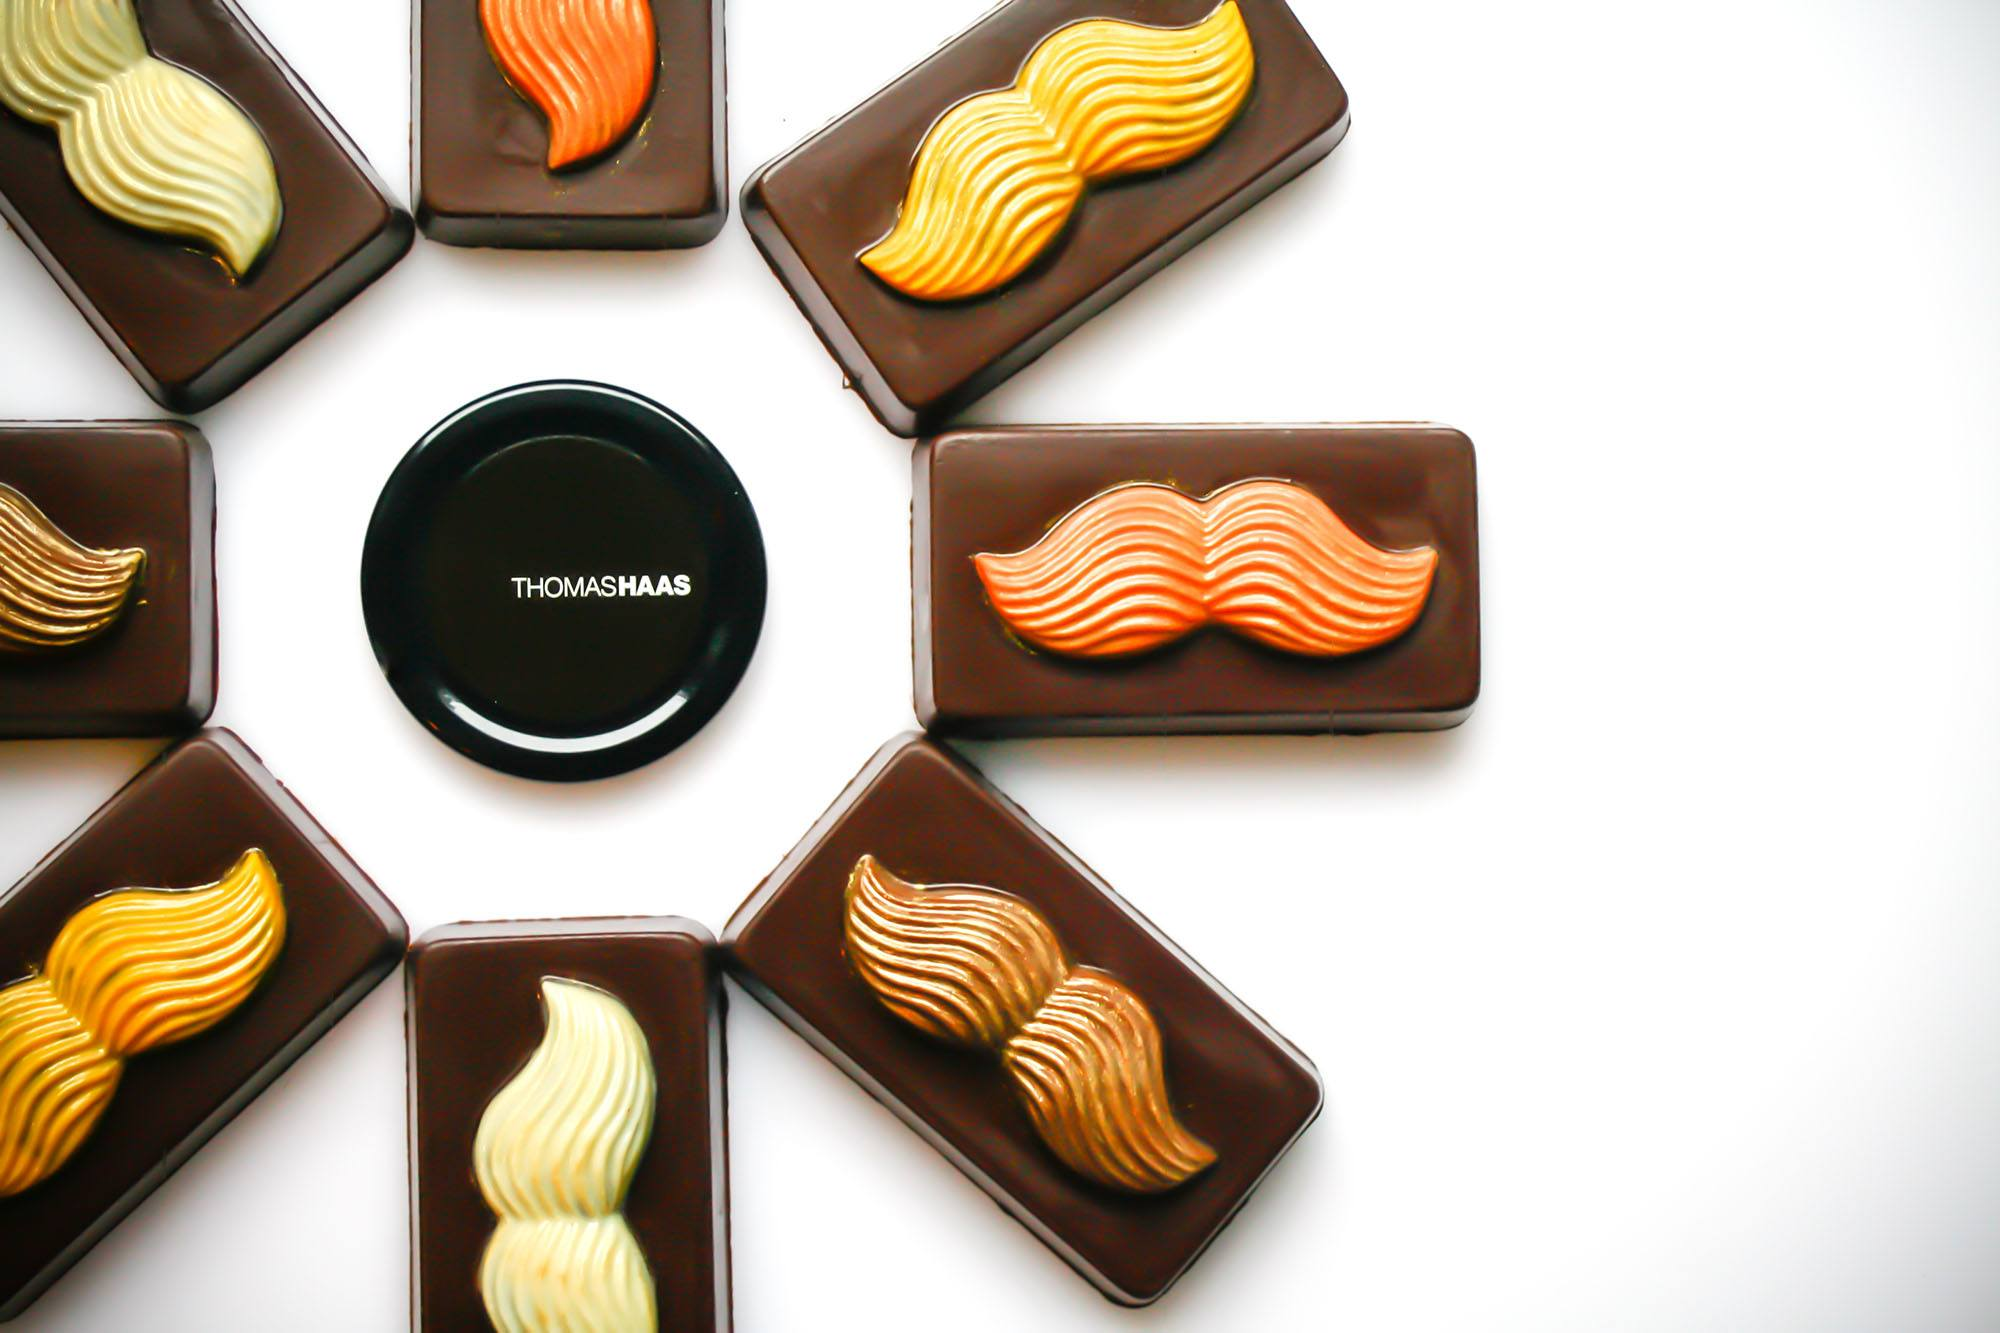 Thomas Haas Movember Moustache Bars feature Guinness ganache and a stout-malt wafer (Thomas Haas)